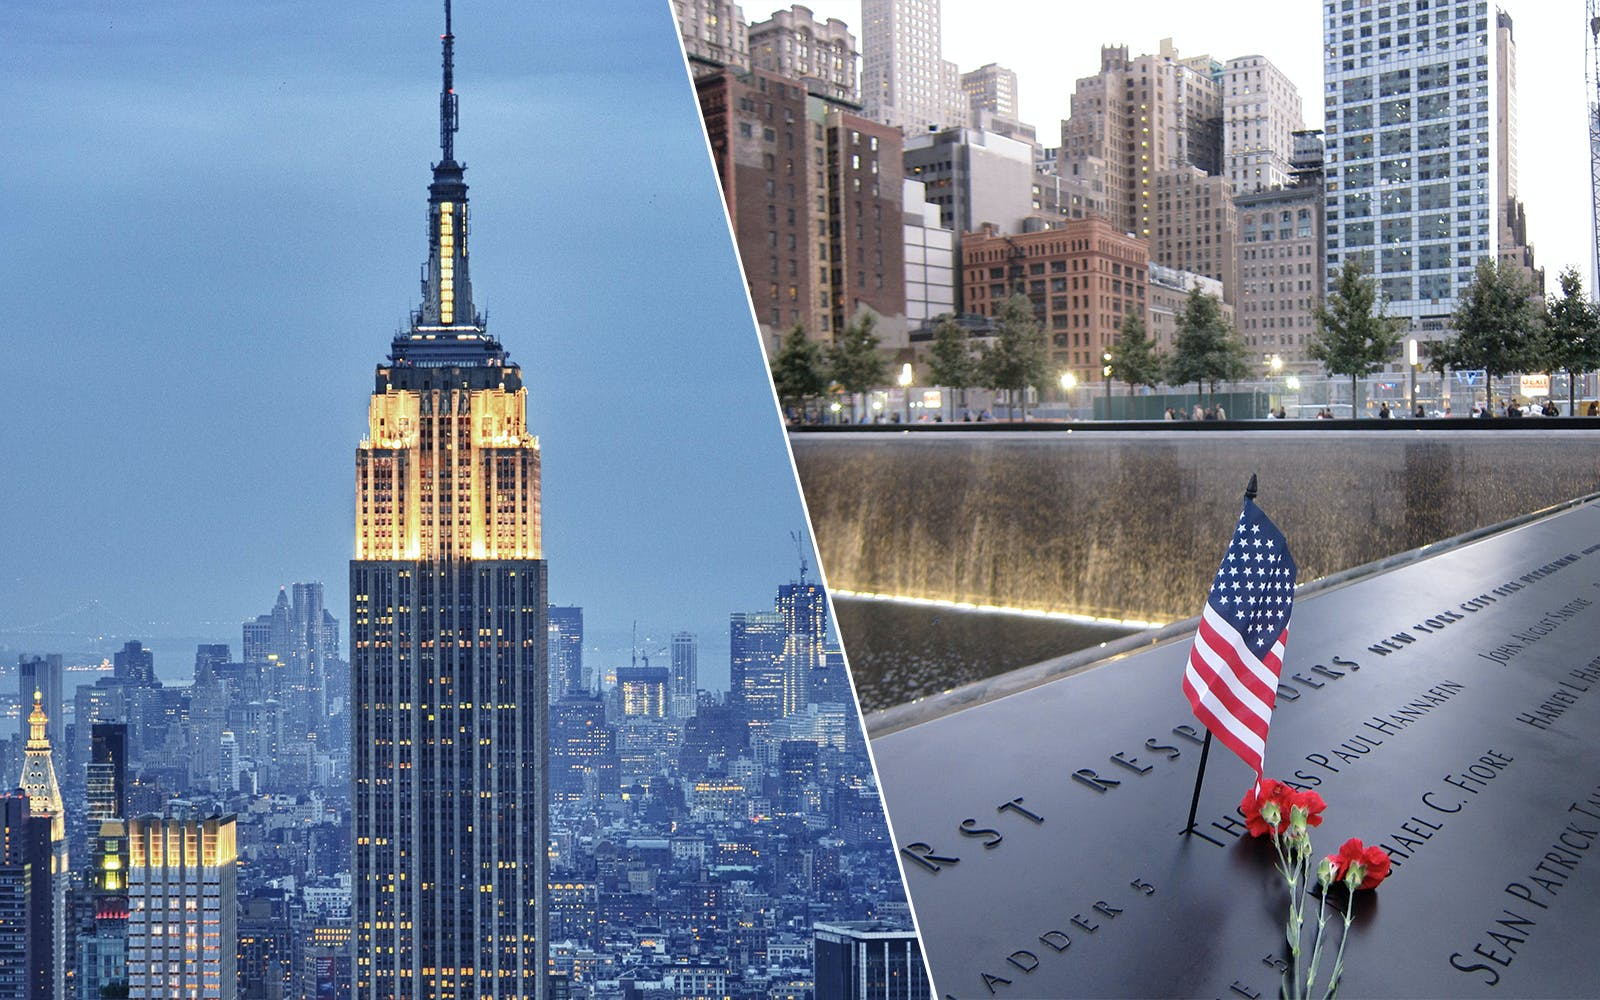 Empire State Building + 9/11 Memorial Museum Tickets